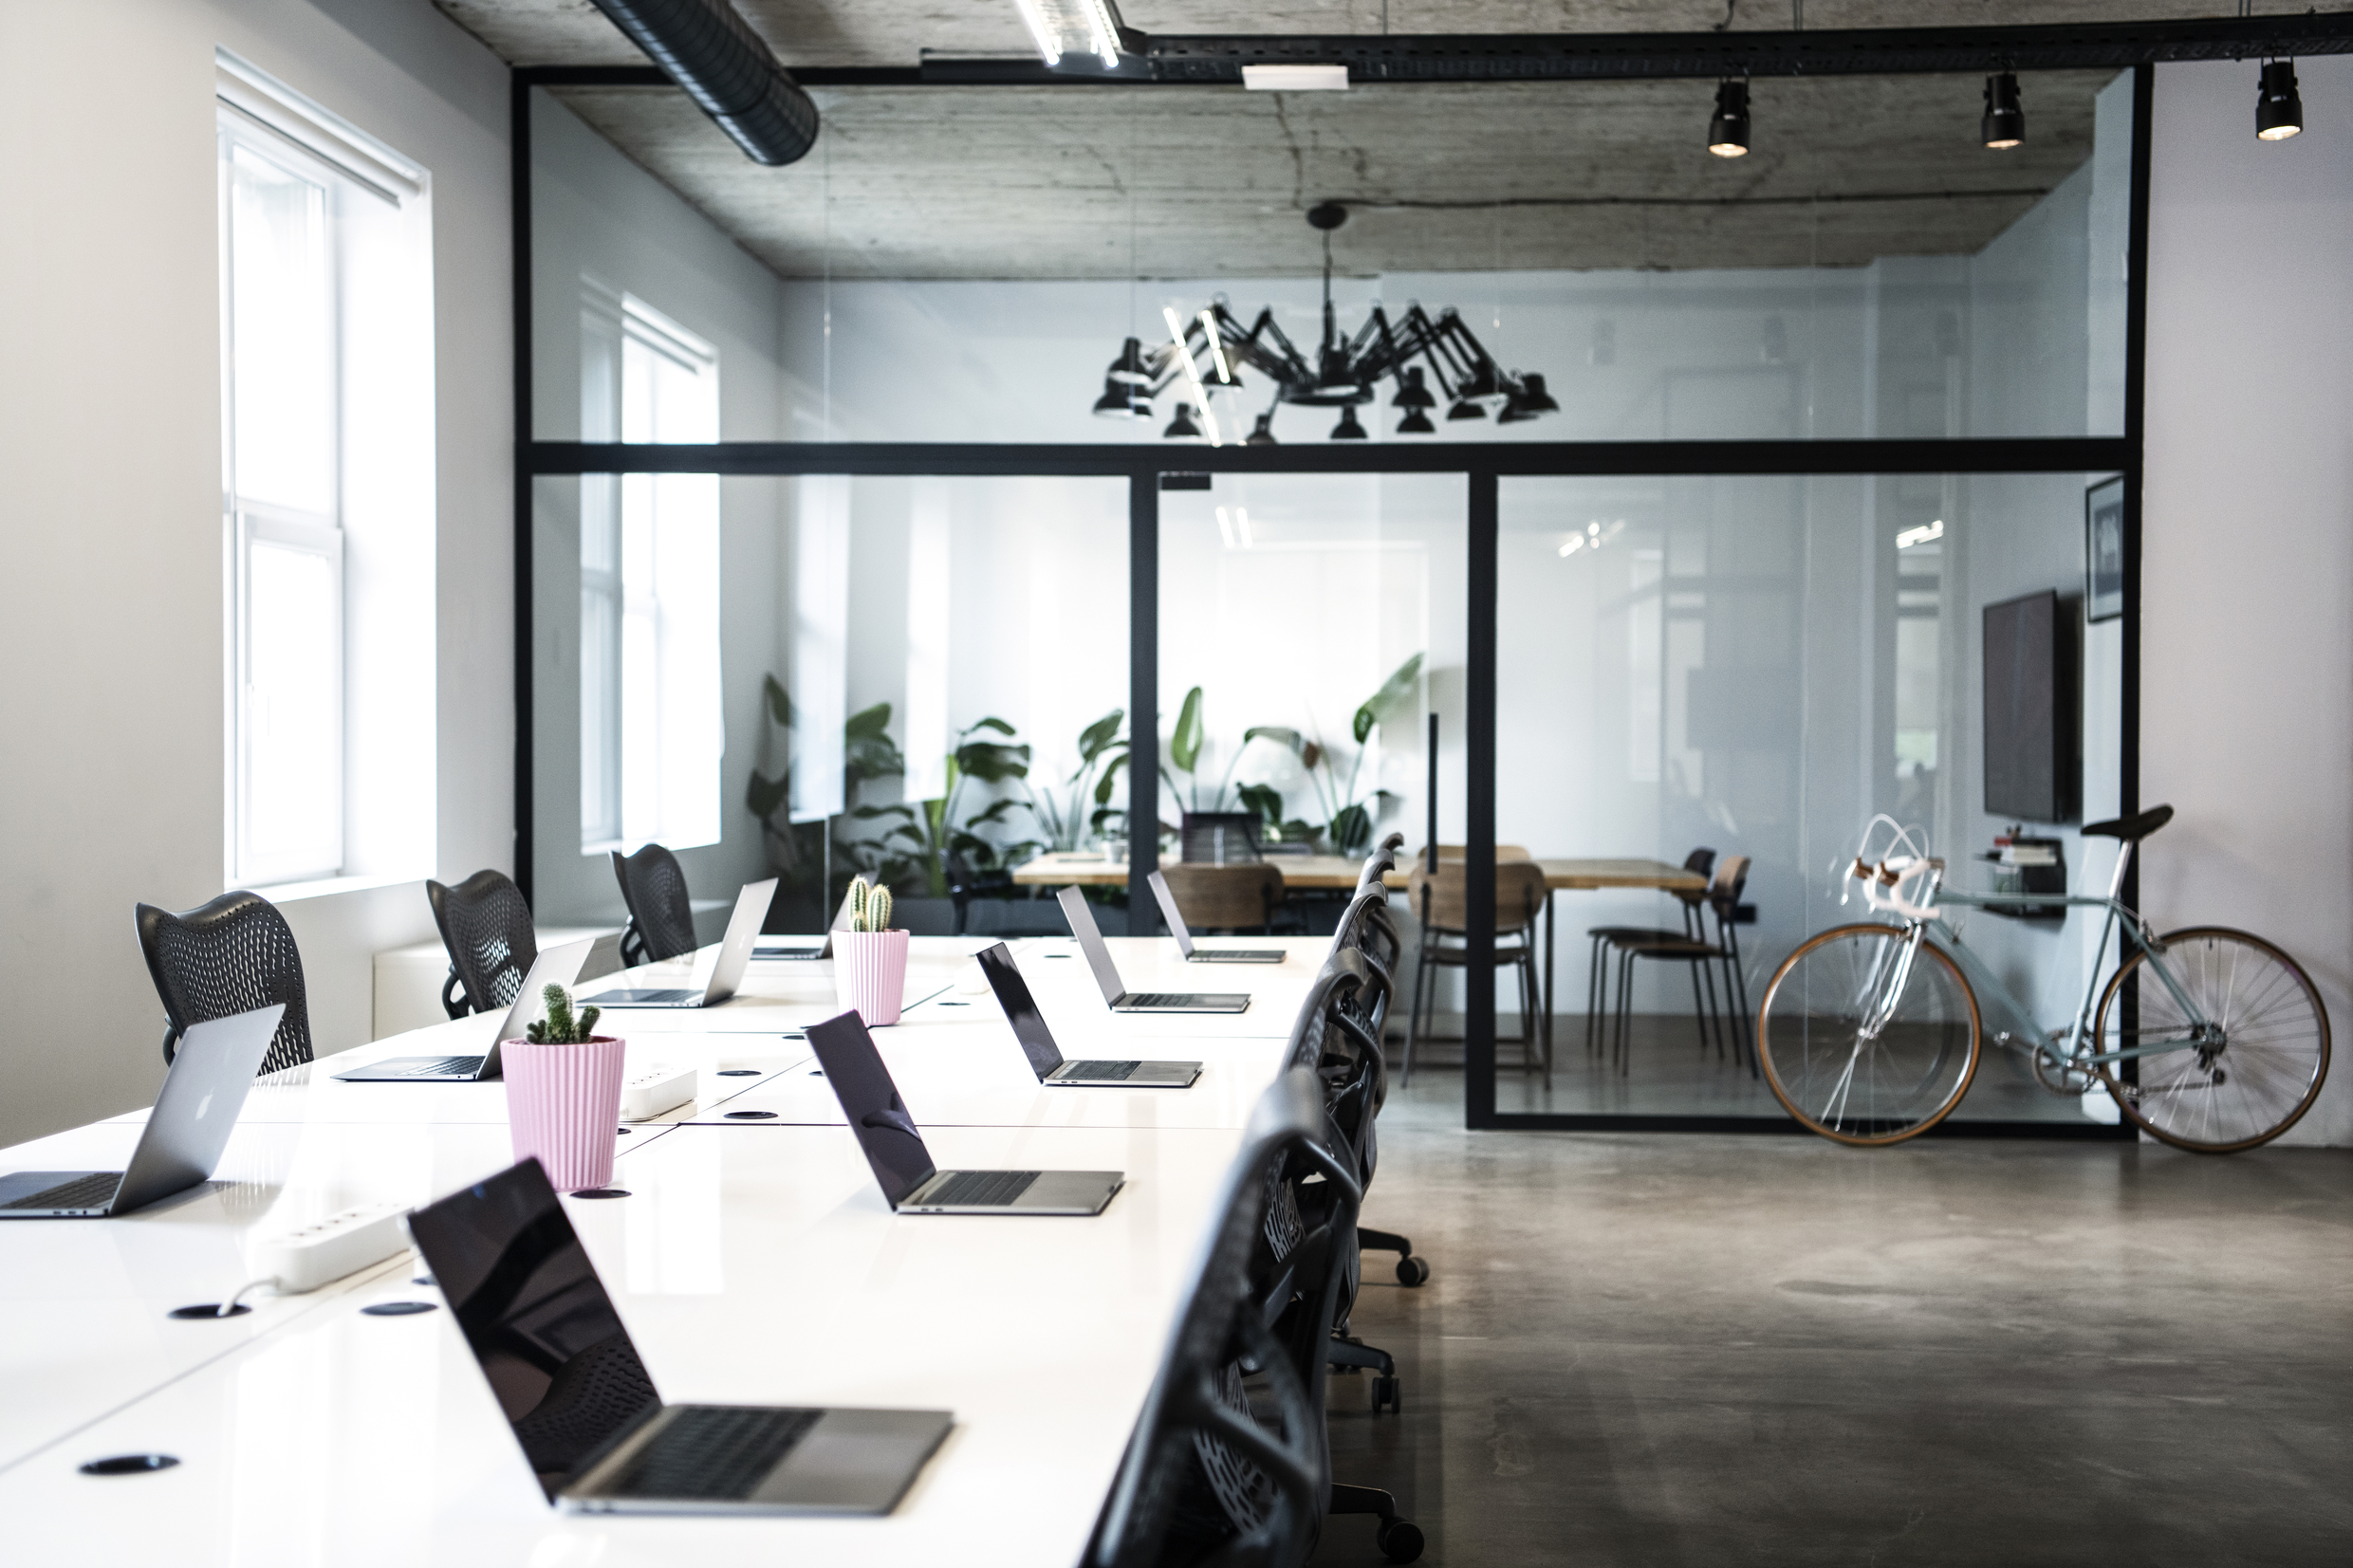 Working area with conference room at Despark agency headquarters, Sofia